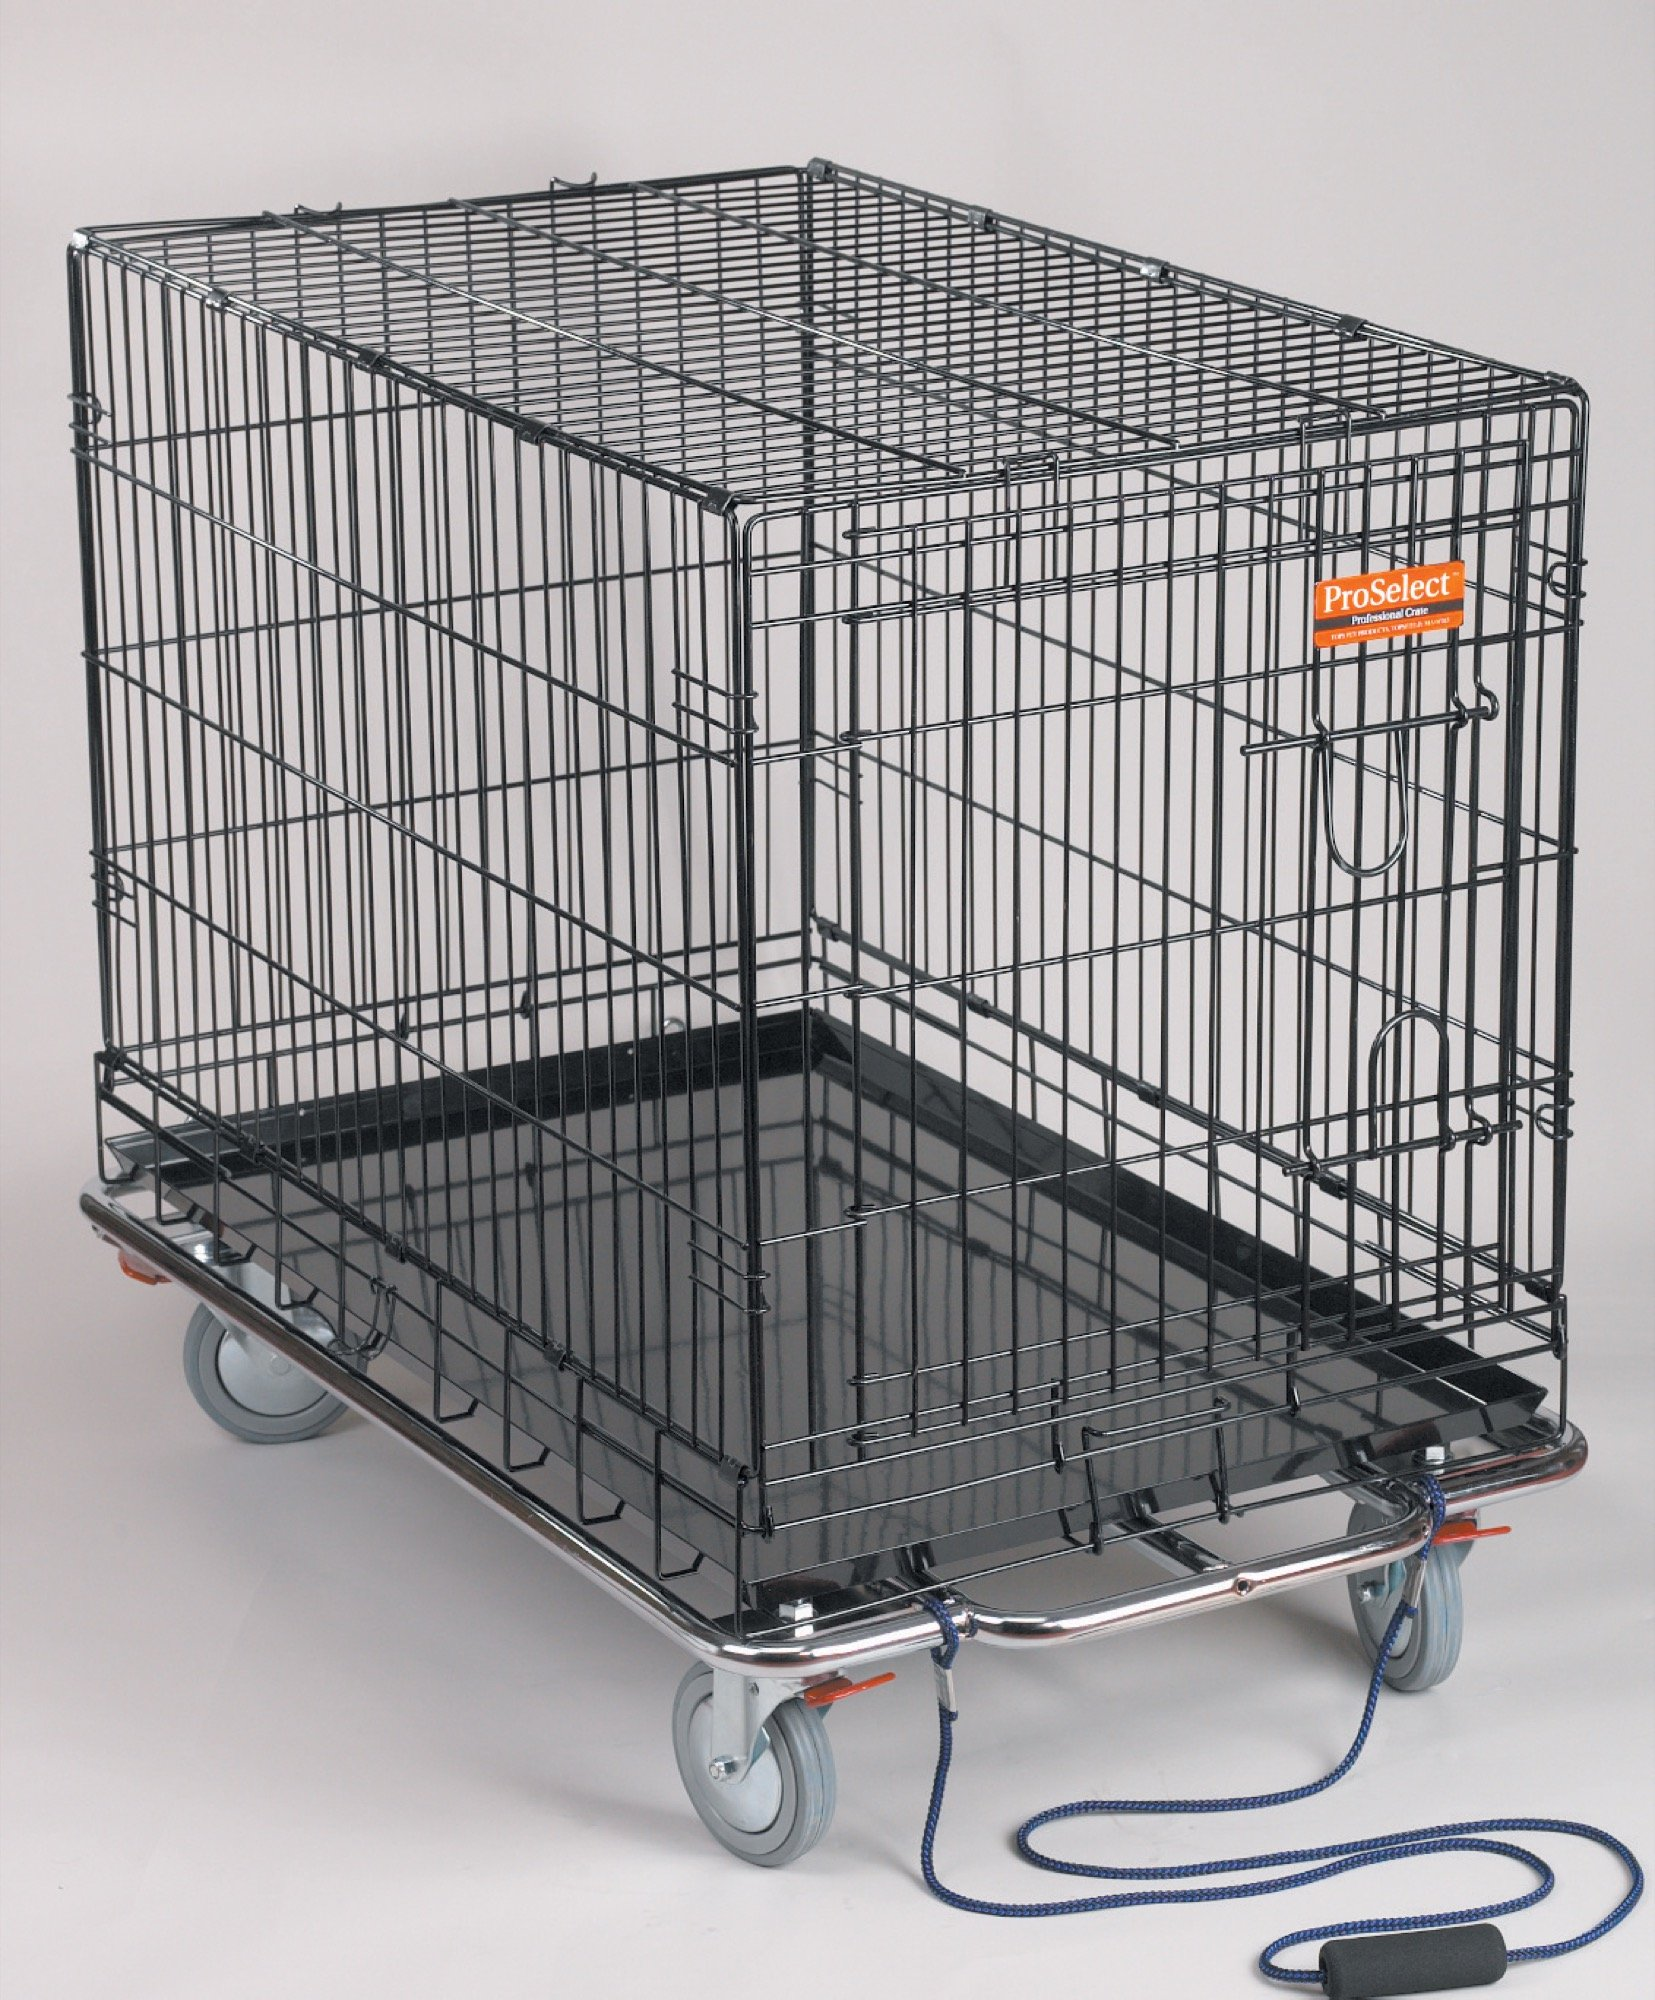 ProSelect  Kennel Karts - Heavy-Duty Steel Chrome Carts with Wheels Designed to Move Kennel Cages Around Grooming Shops, Animal Clinics, Shelters, or Rescues by Pro Select